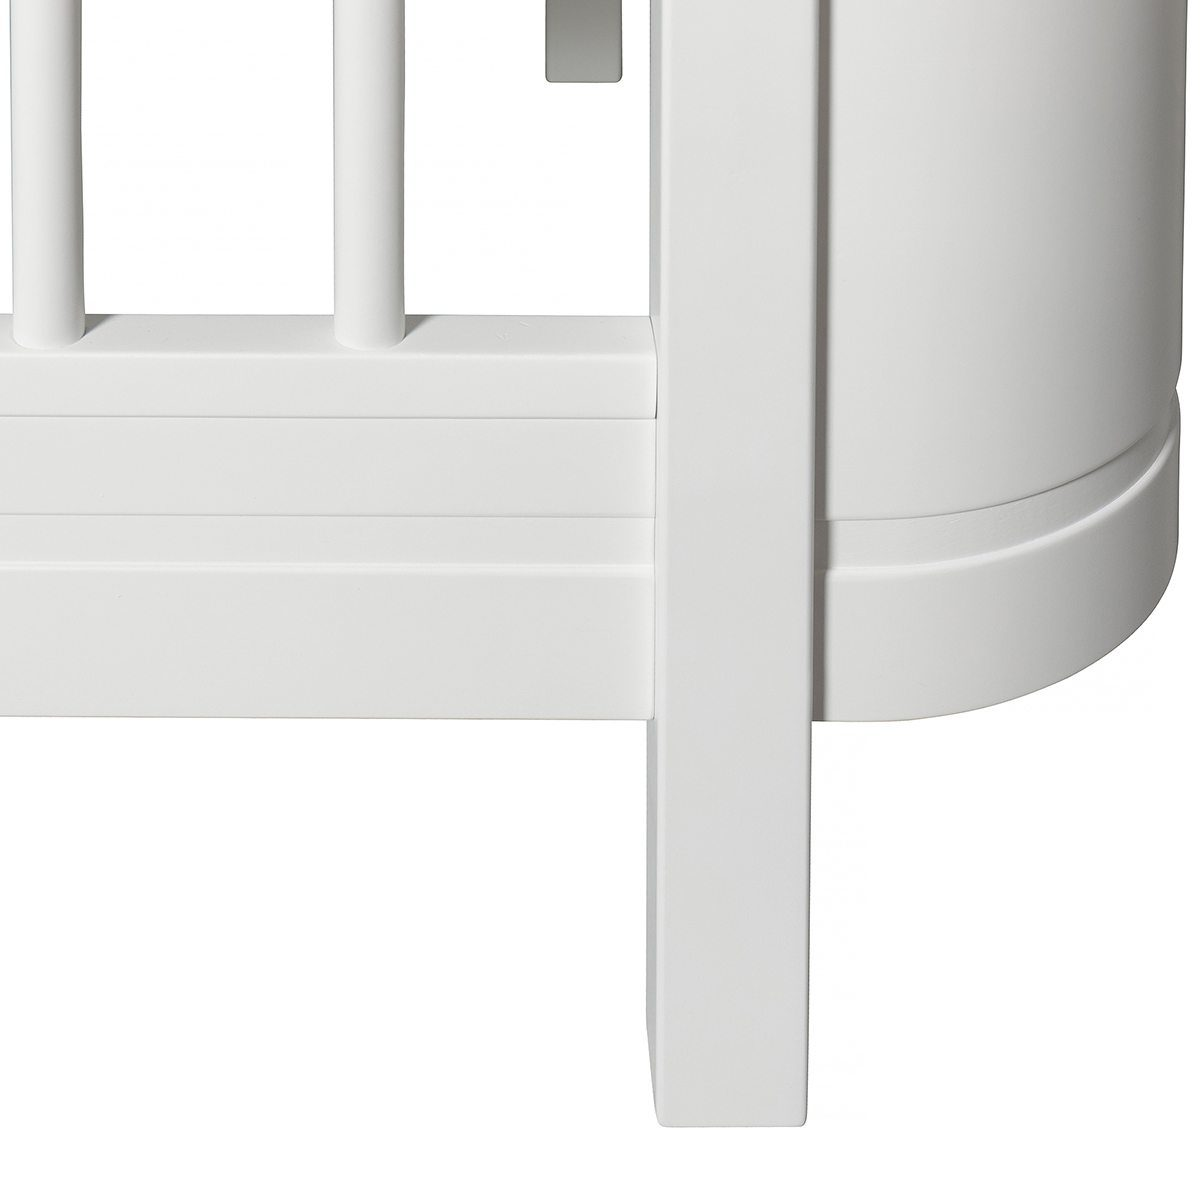 Oliver Furniture Ledikant Wood Mini+ white detail